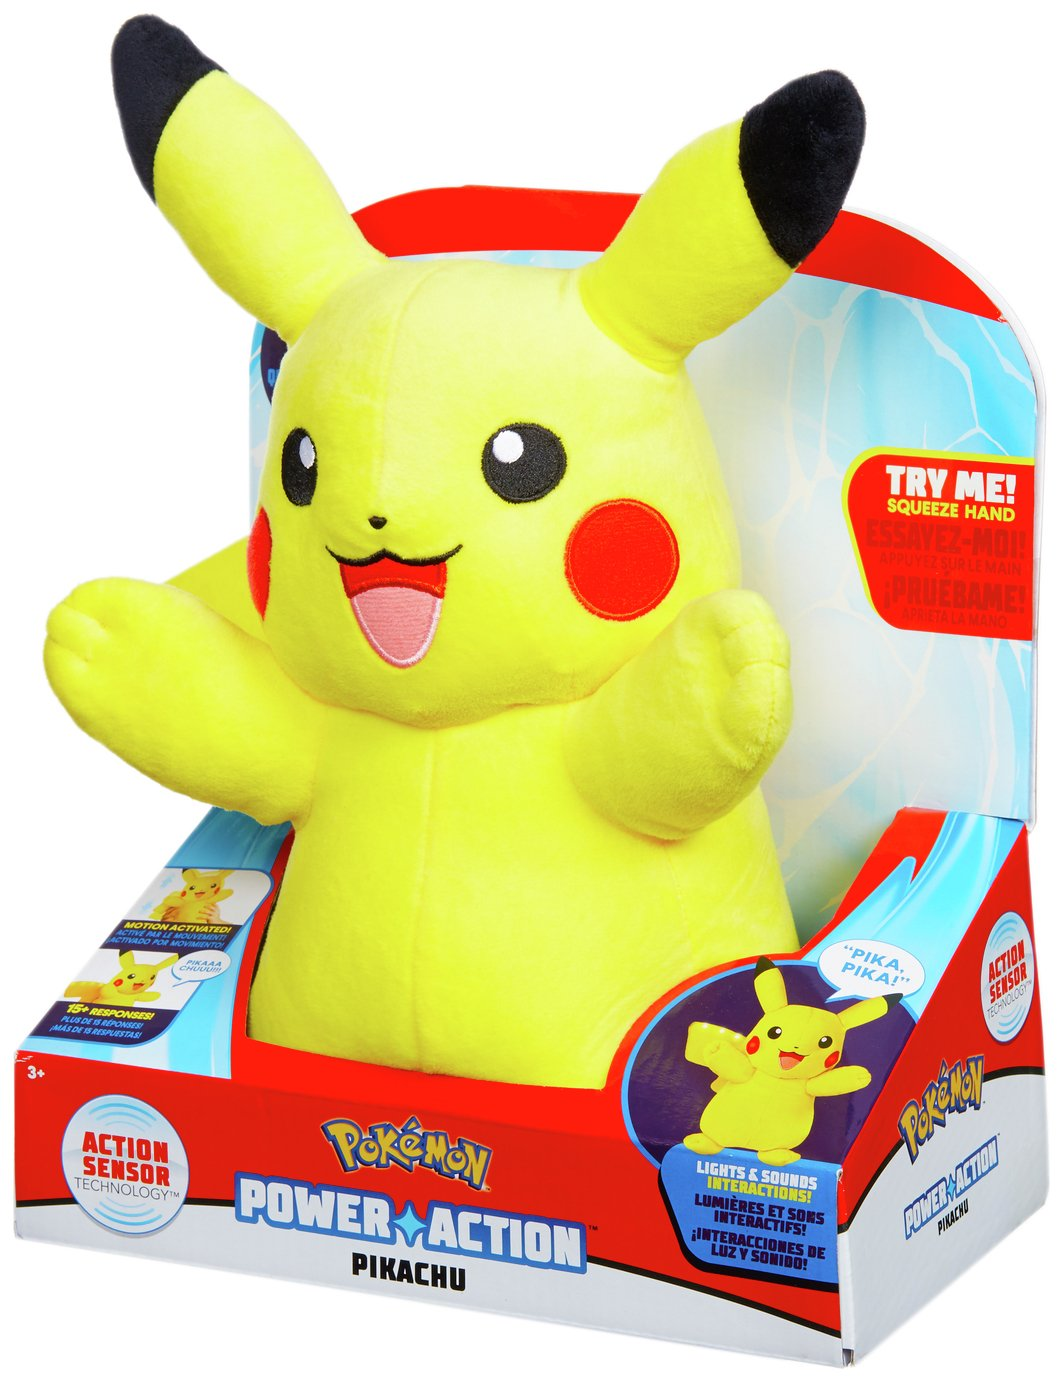 Pokémon Power Action Pikachu review